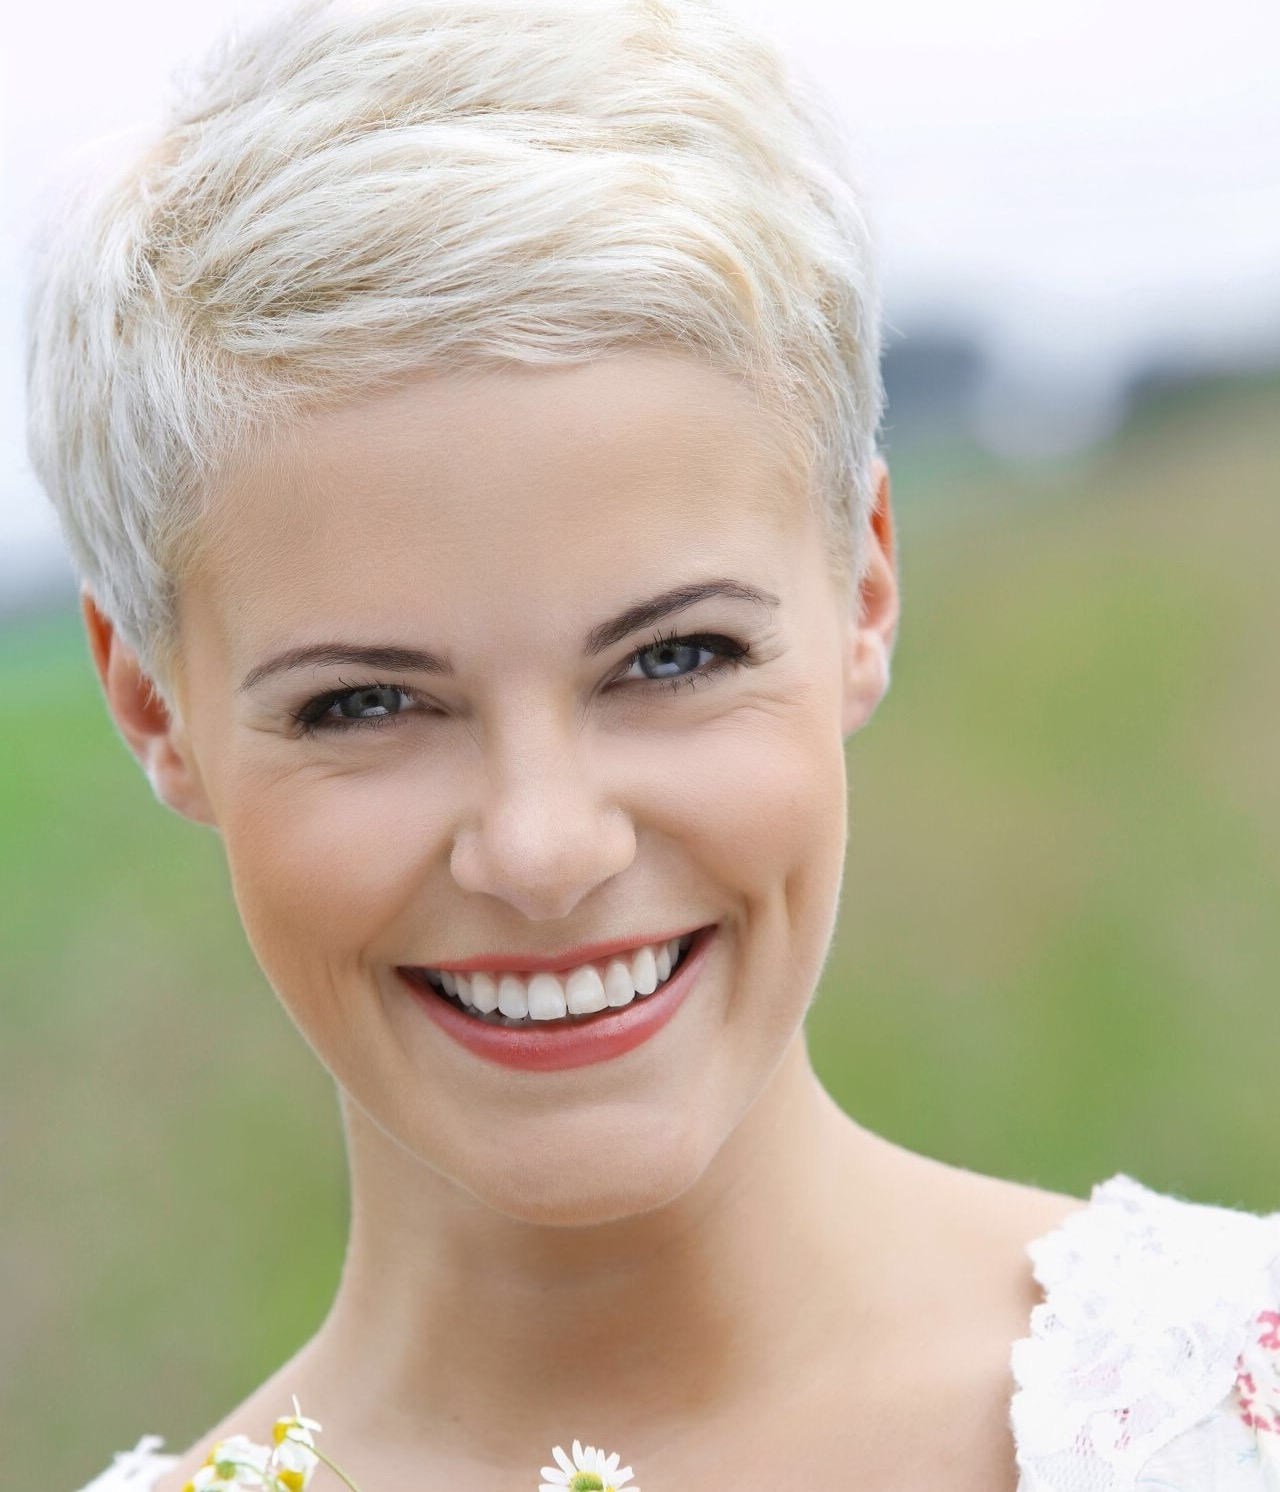 Pinchristy Watts On It's Only Hair | Pinterest | Short Hair Inside Current Short Blonde Pixie Hairstyles (View 8 of 15)